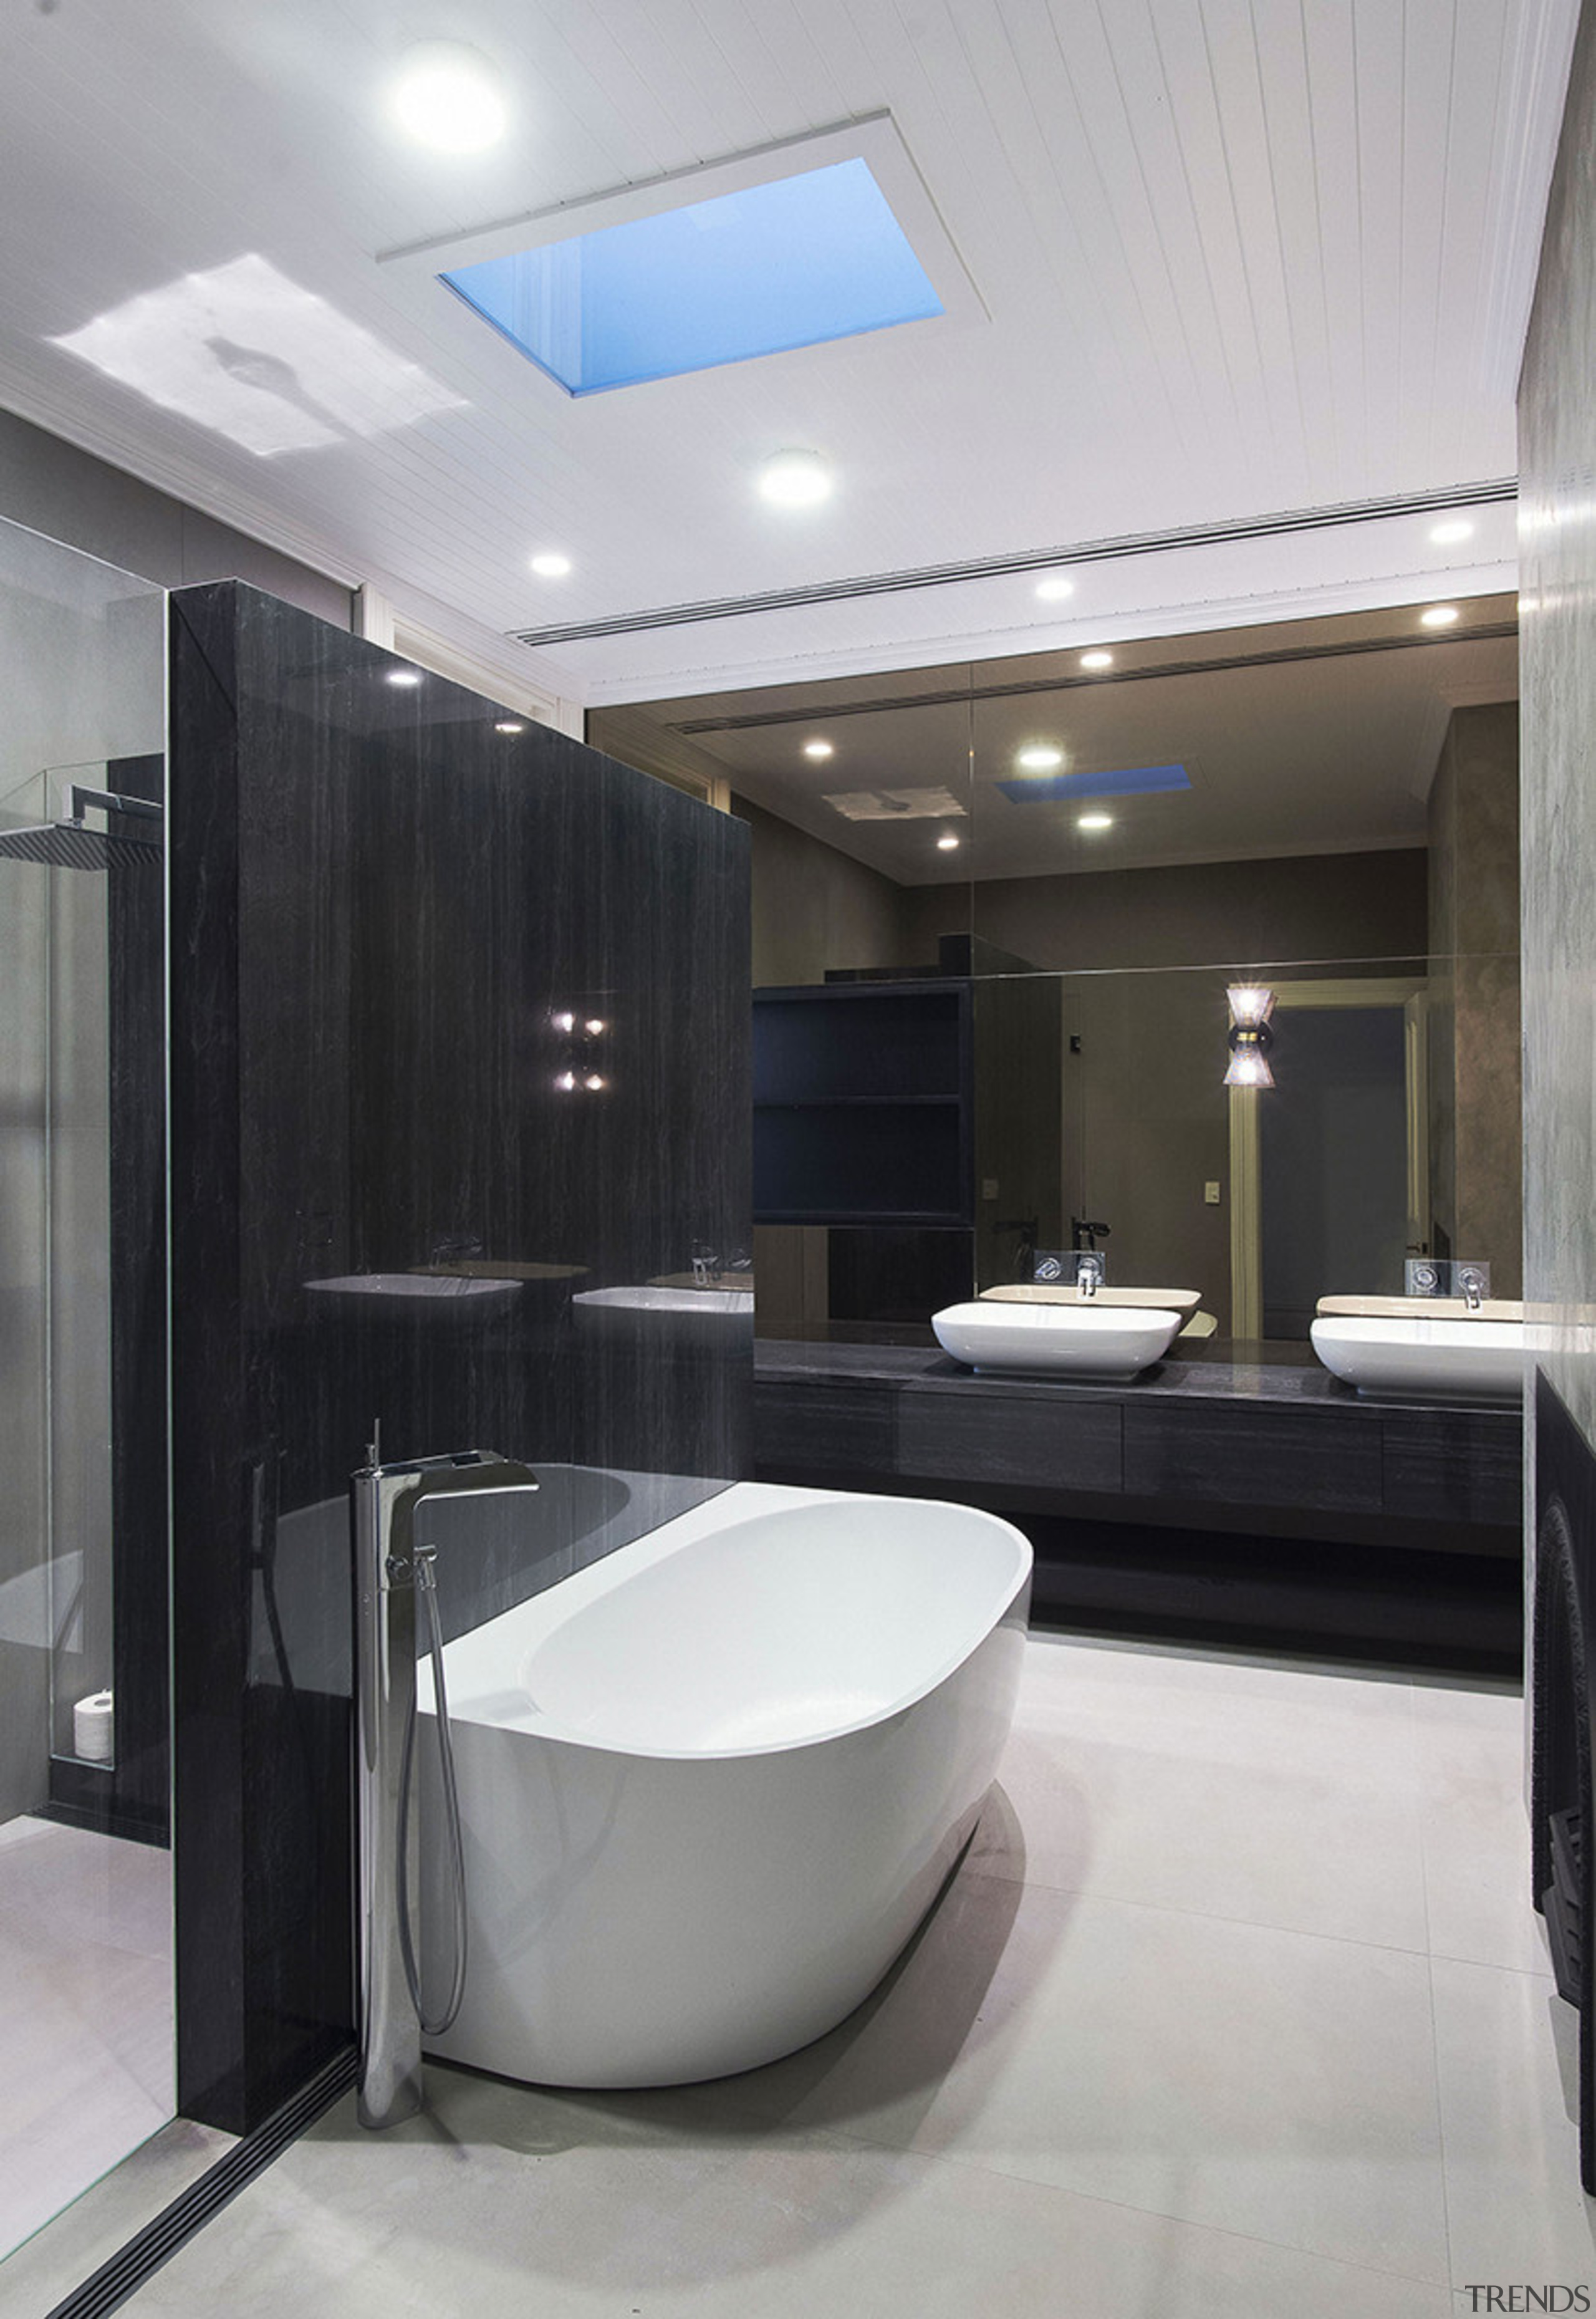 This home's main bathroom – in the original bathroom, floor, interior design, plumbing fixture, room, sink, gray, black, skylight